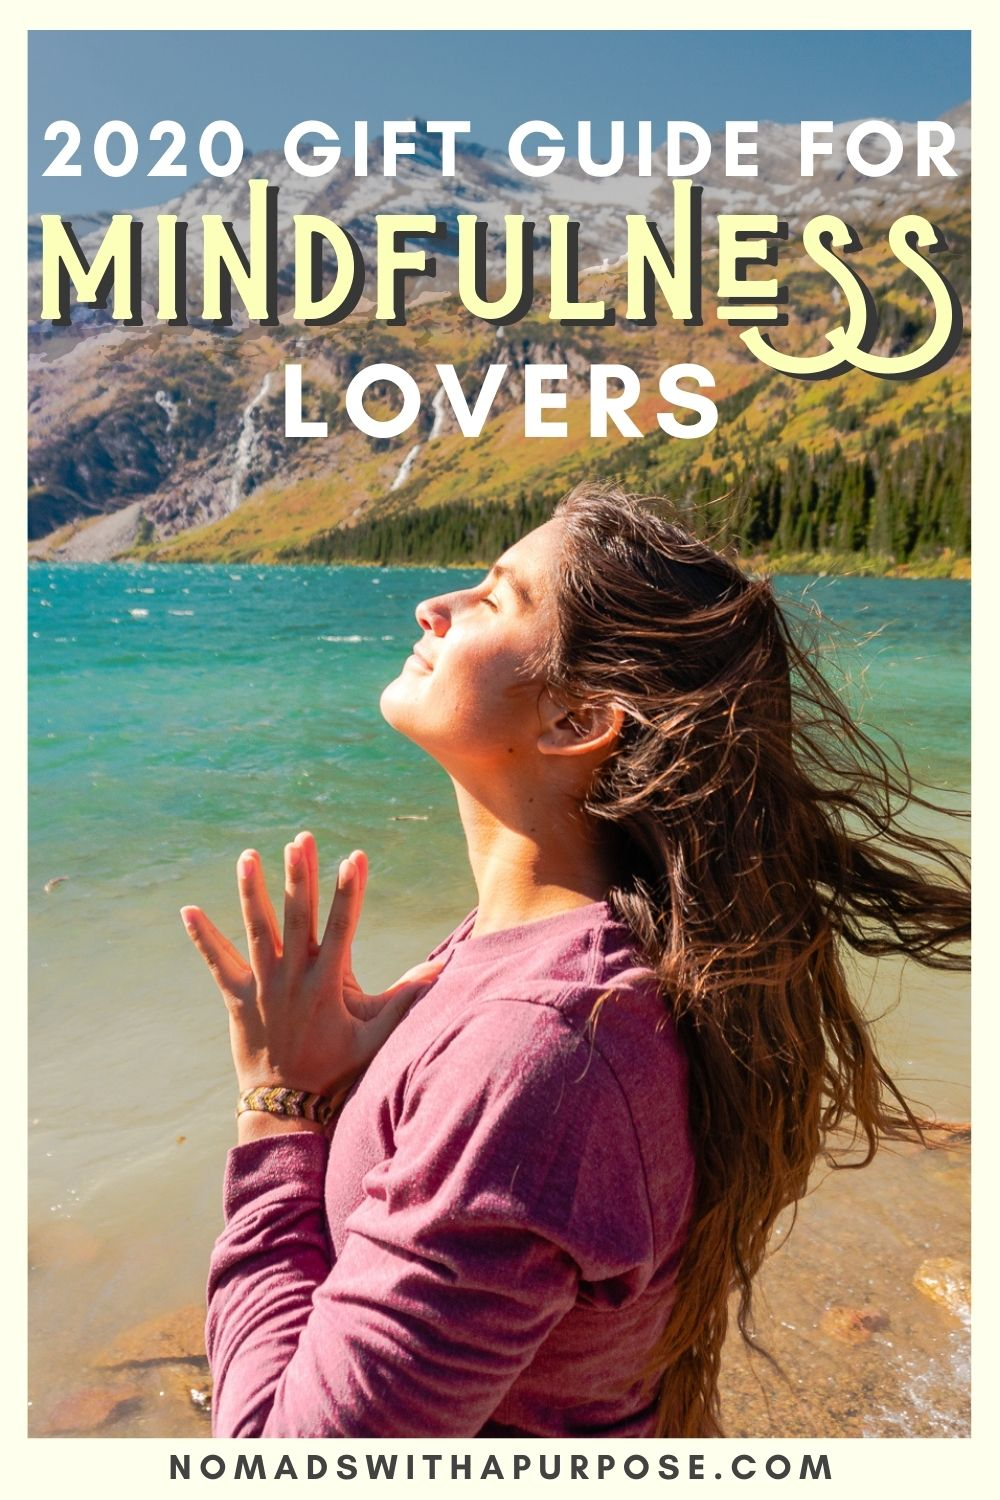 2020 Gift Guide For Mindfulness Lovers